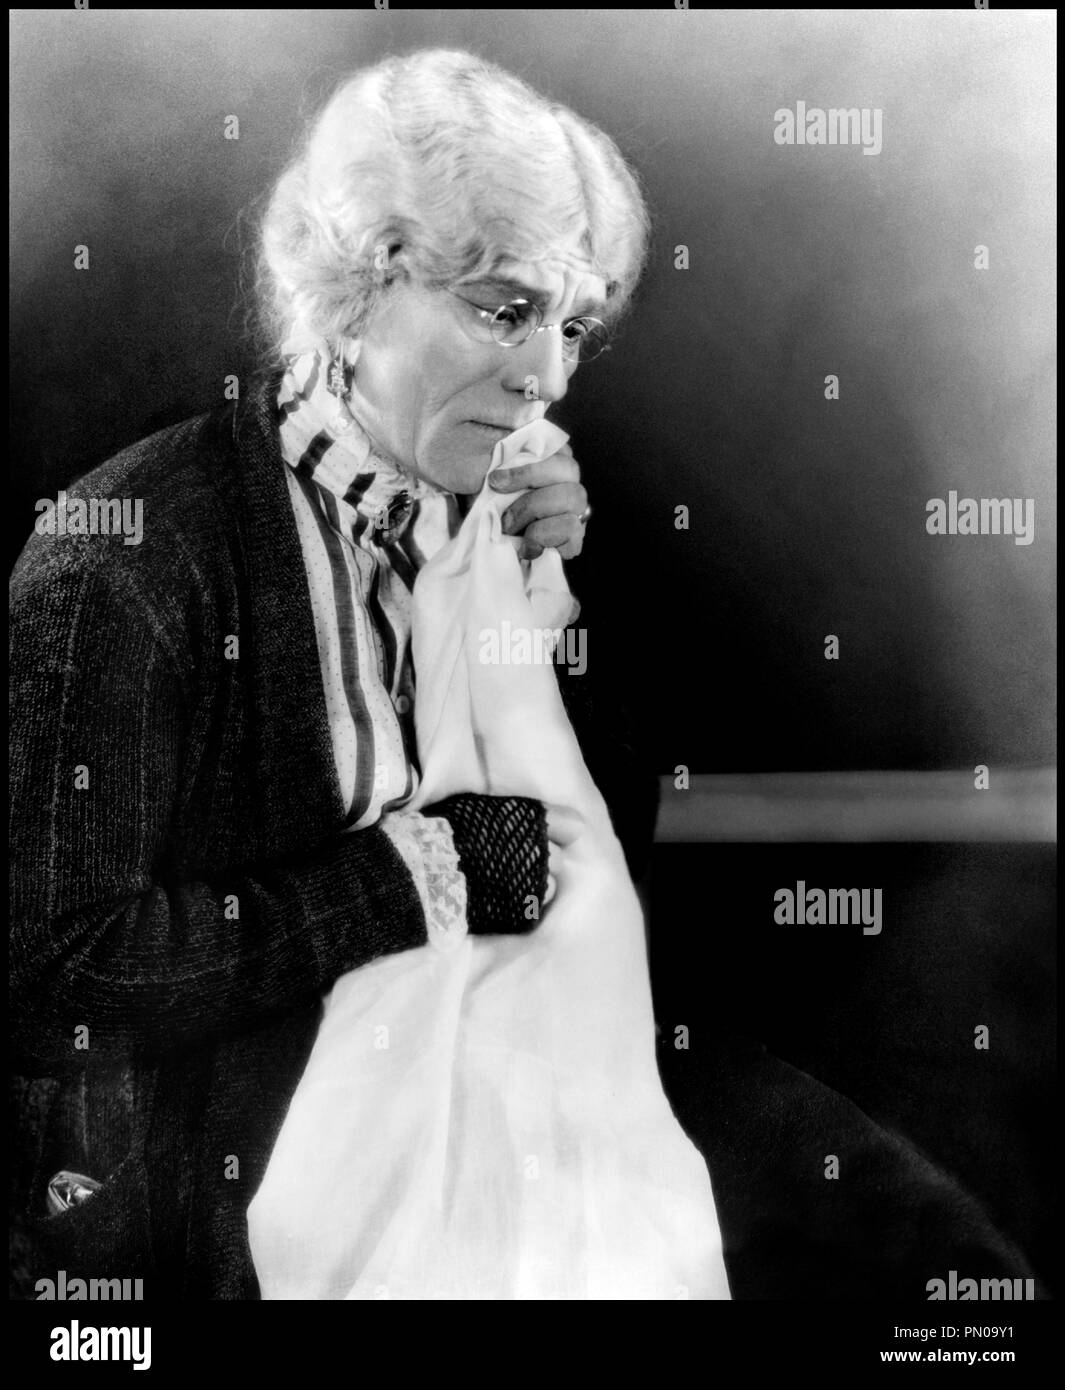 Prod DB © MGM / DR LE CLUB DES TROIS (THE UNHOLY THREE) de Tod Browning 1925 USA avec Lon Chaney travesti, vieille dame, grand-mere, lunettes, mitaines film muet d'apres le roman de Clarence Aaron Tod Robbins MGM code 217 - Stock Image